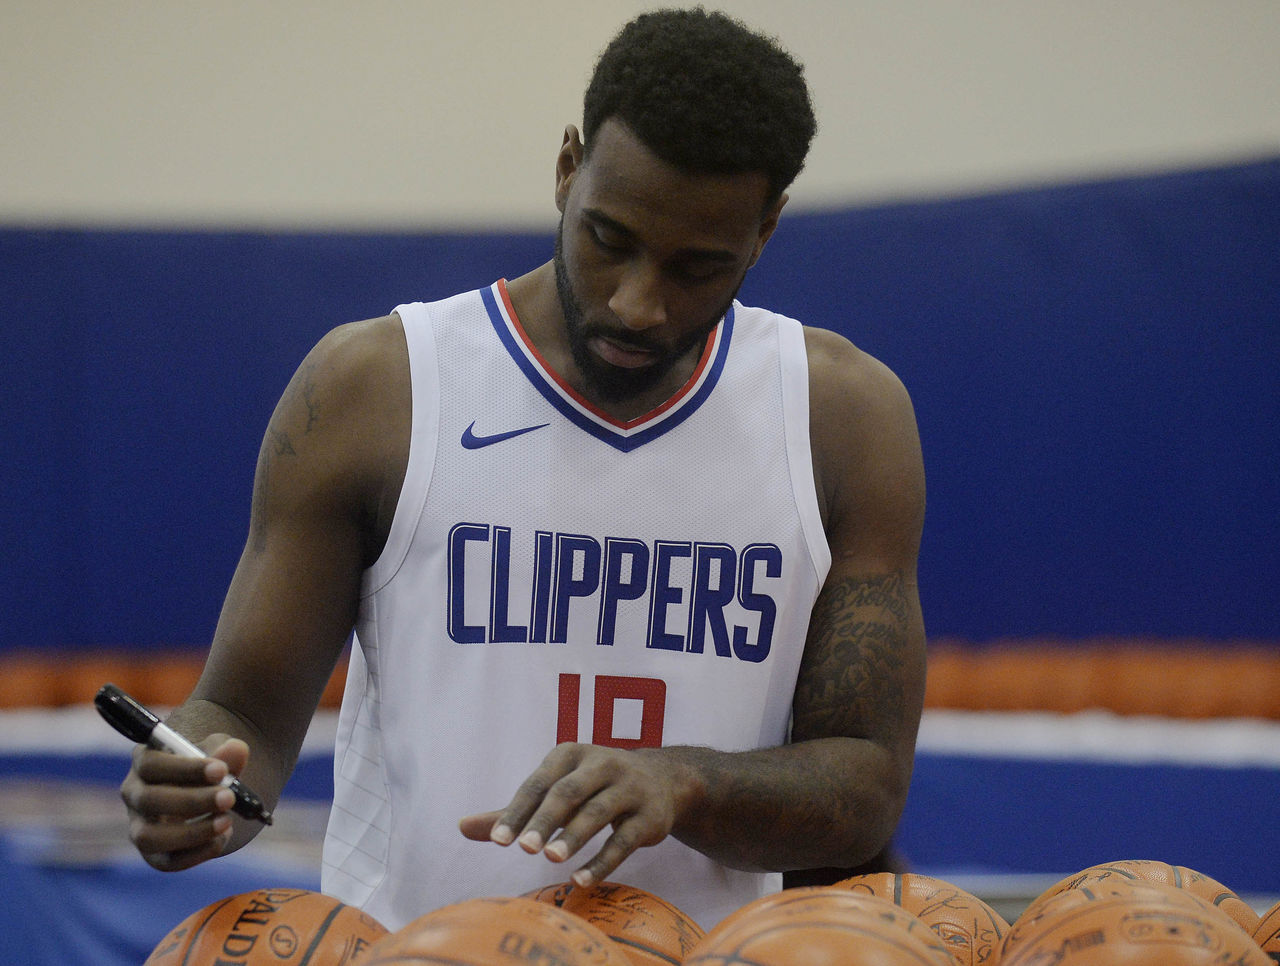 Cropped_2017-09-25t194635z_509136714_nocid_rtrmadp_3_nba-los-angeles-clippers-media-day